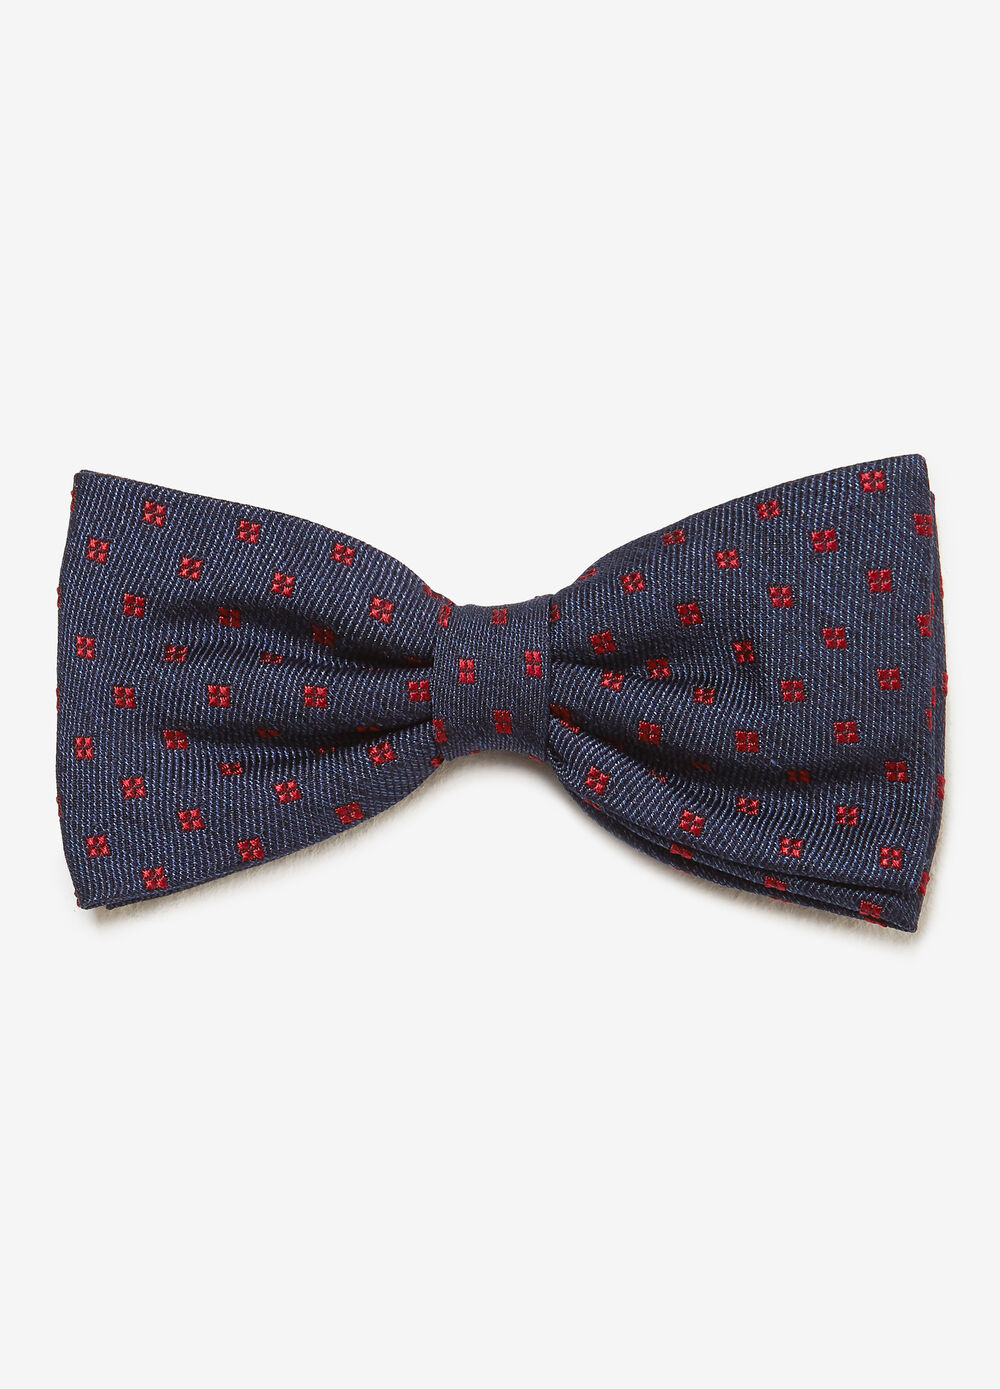 Solid colour bow tie with micro check weave